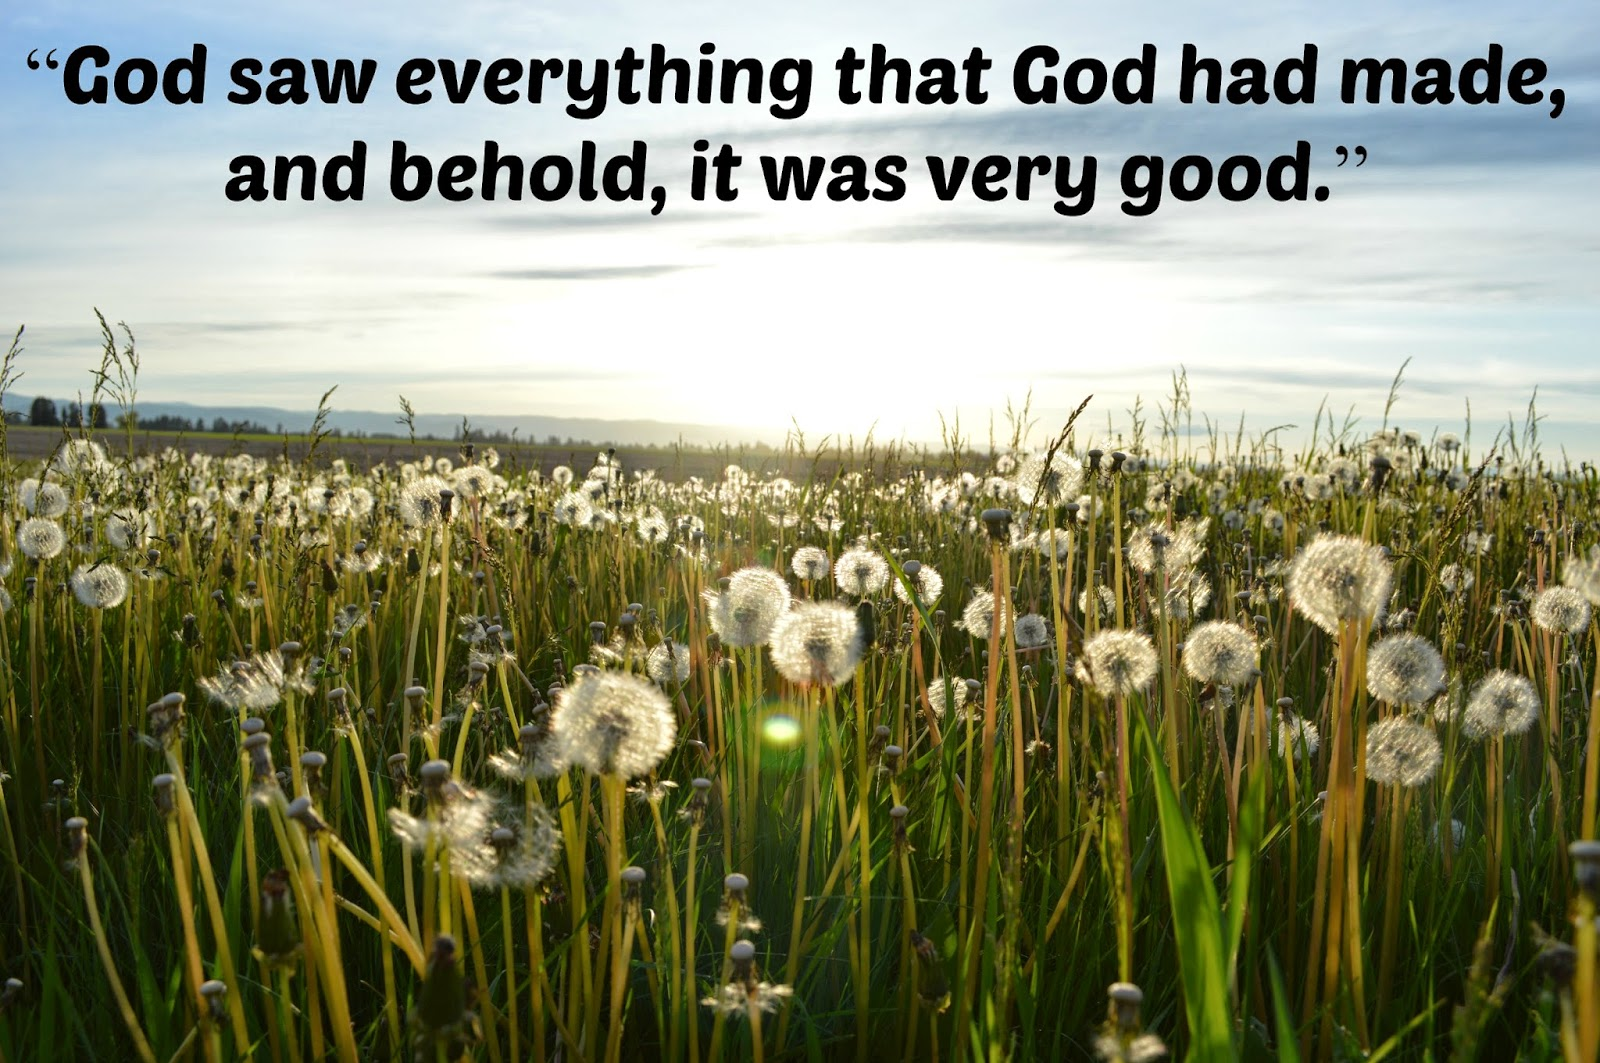 God saw everything, and it was good; Lisa Friedman